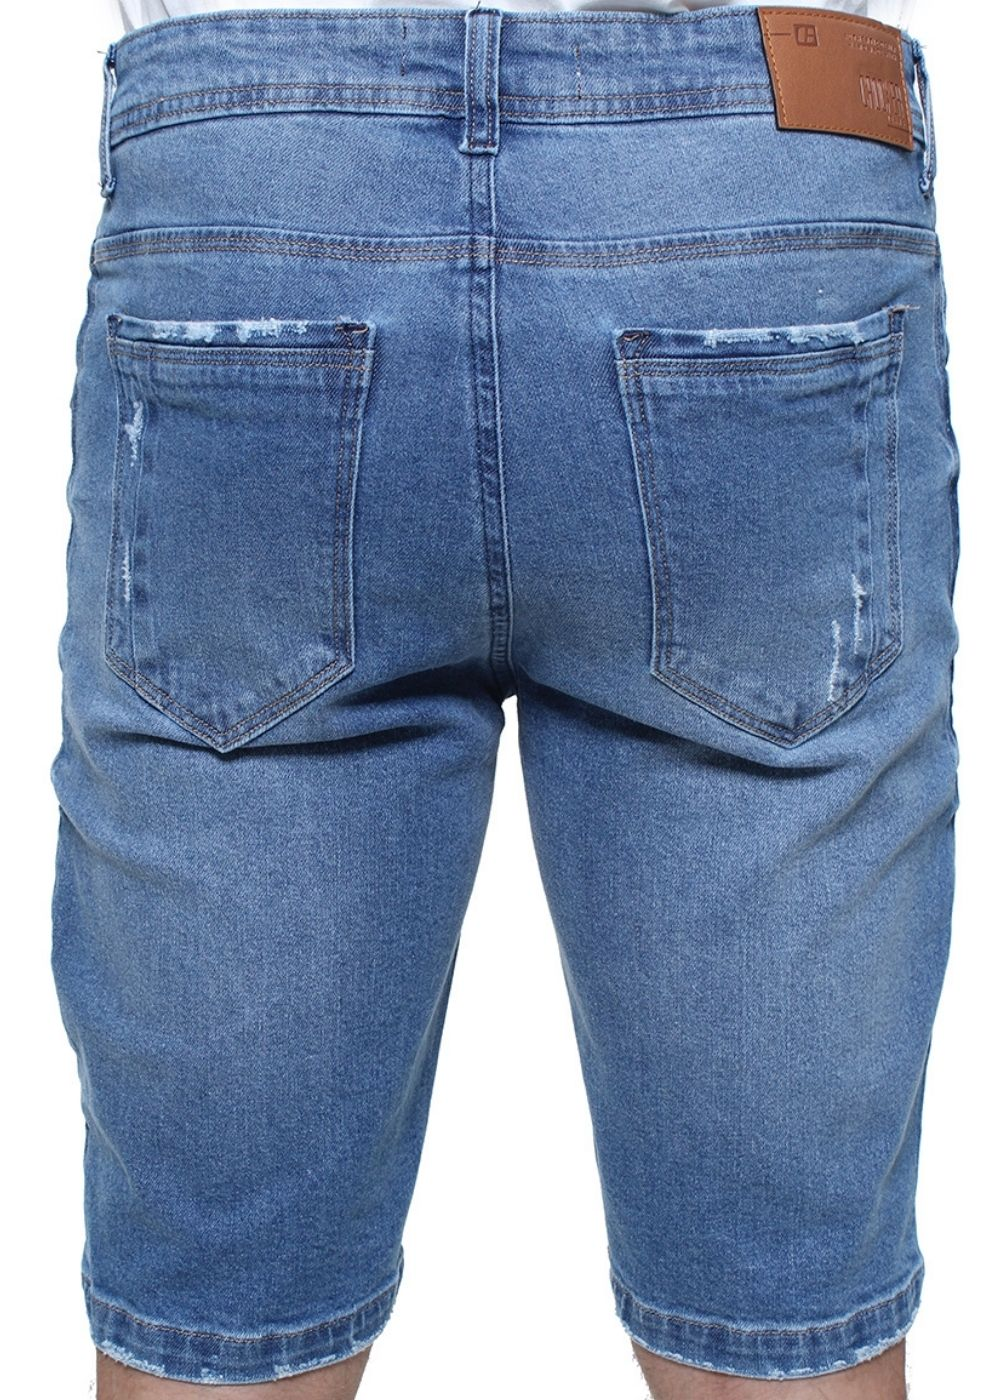 Bermuda Jeans Masculina Destroyed Confort Crocker - 47766